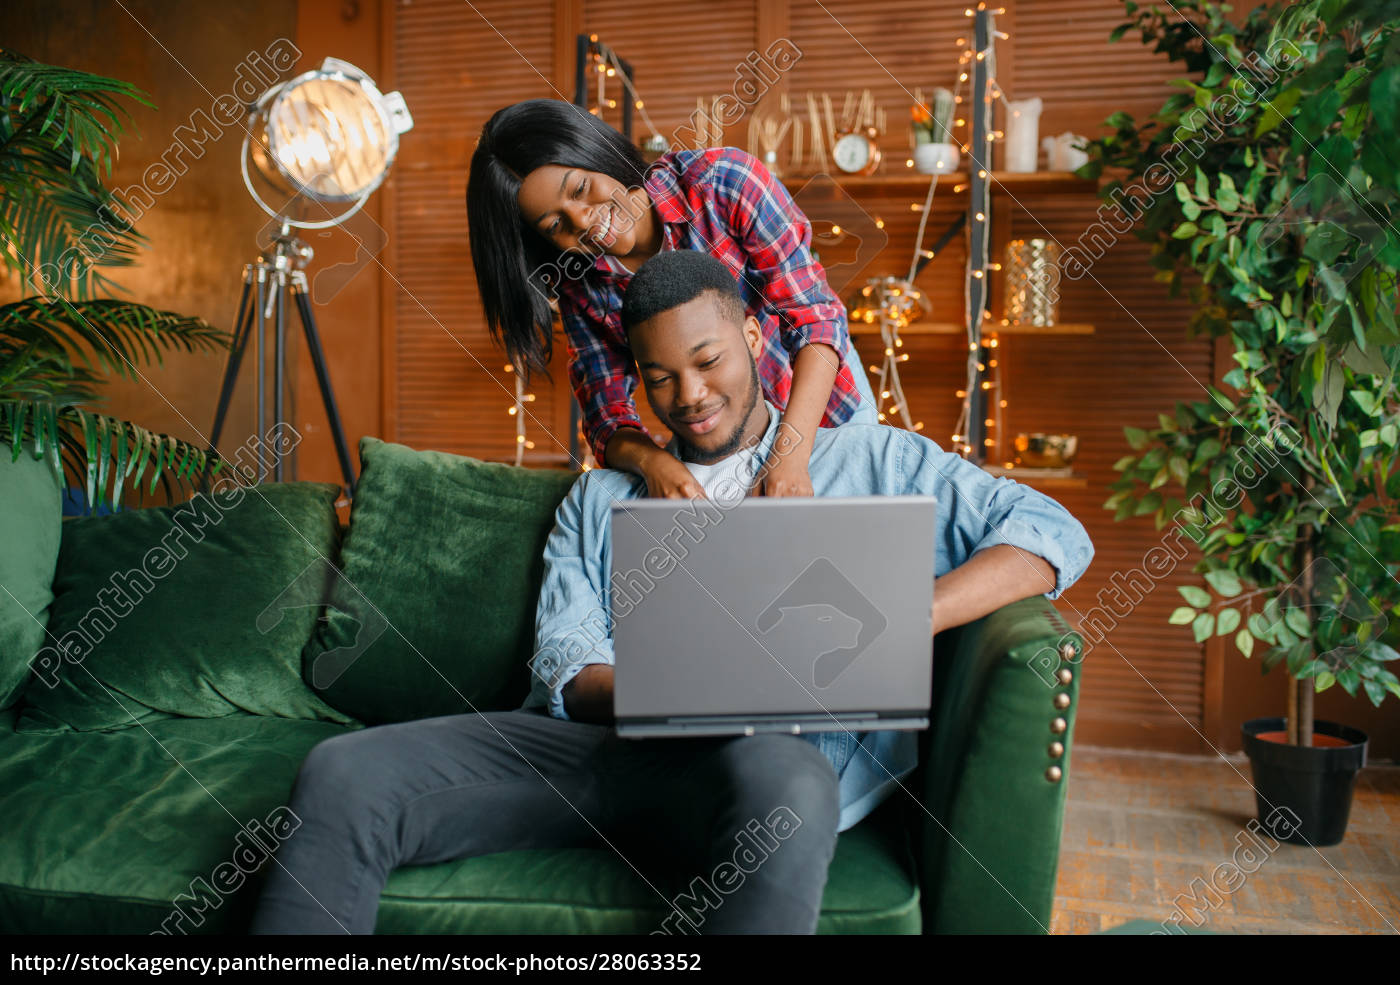 black, couple, with, laptop, having, fun - 28063352